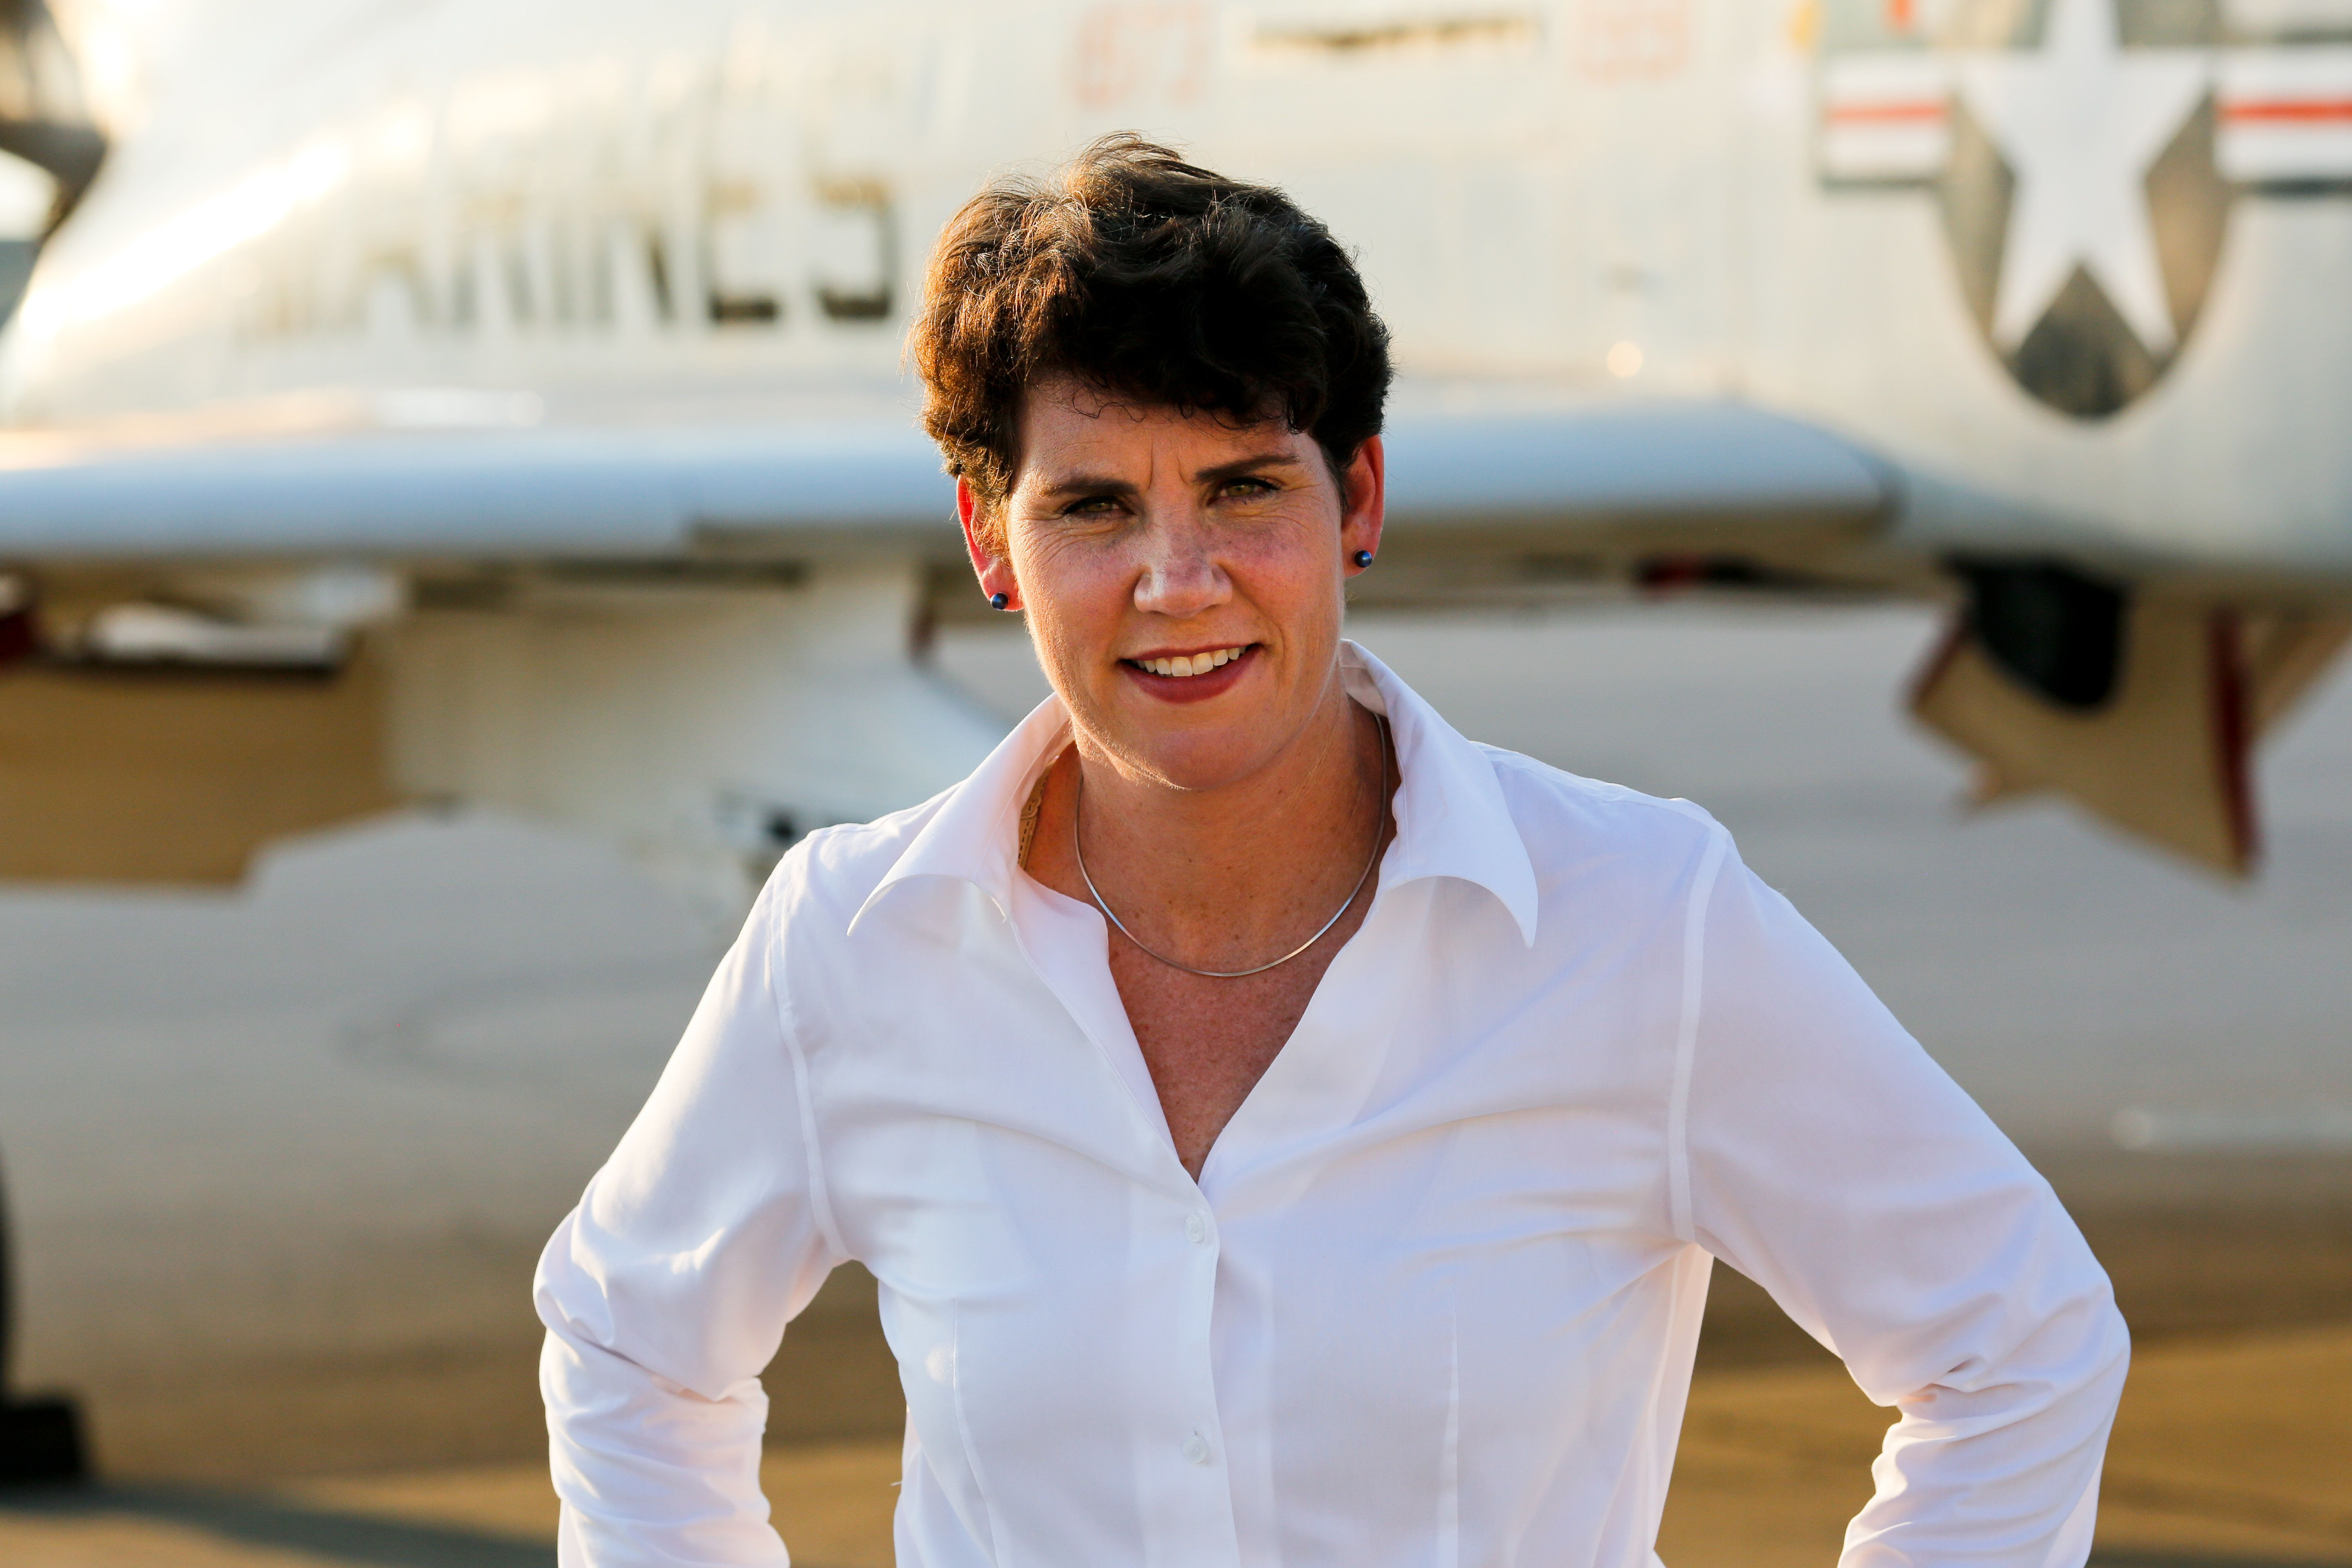 Retired Marine fighter pilot Amy McGrath trailed her Democratic primary opponent by 40 points in December. But her own intern